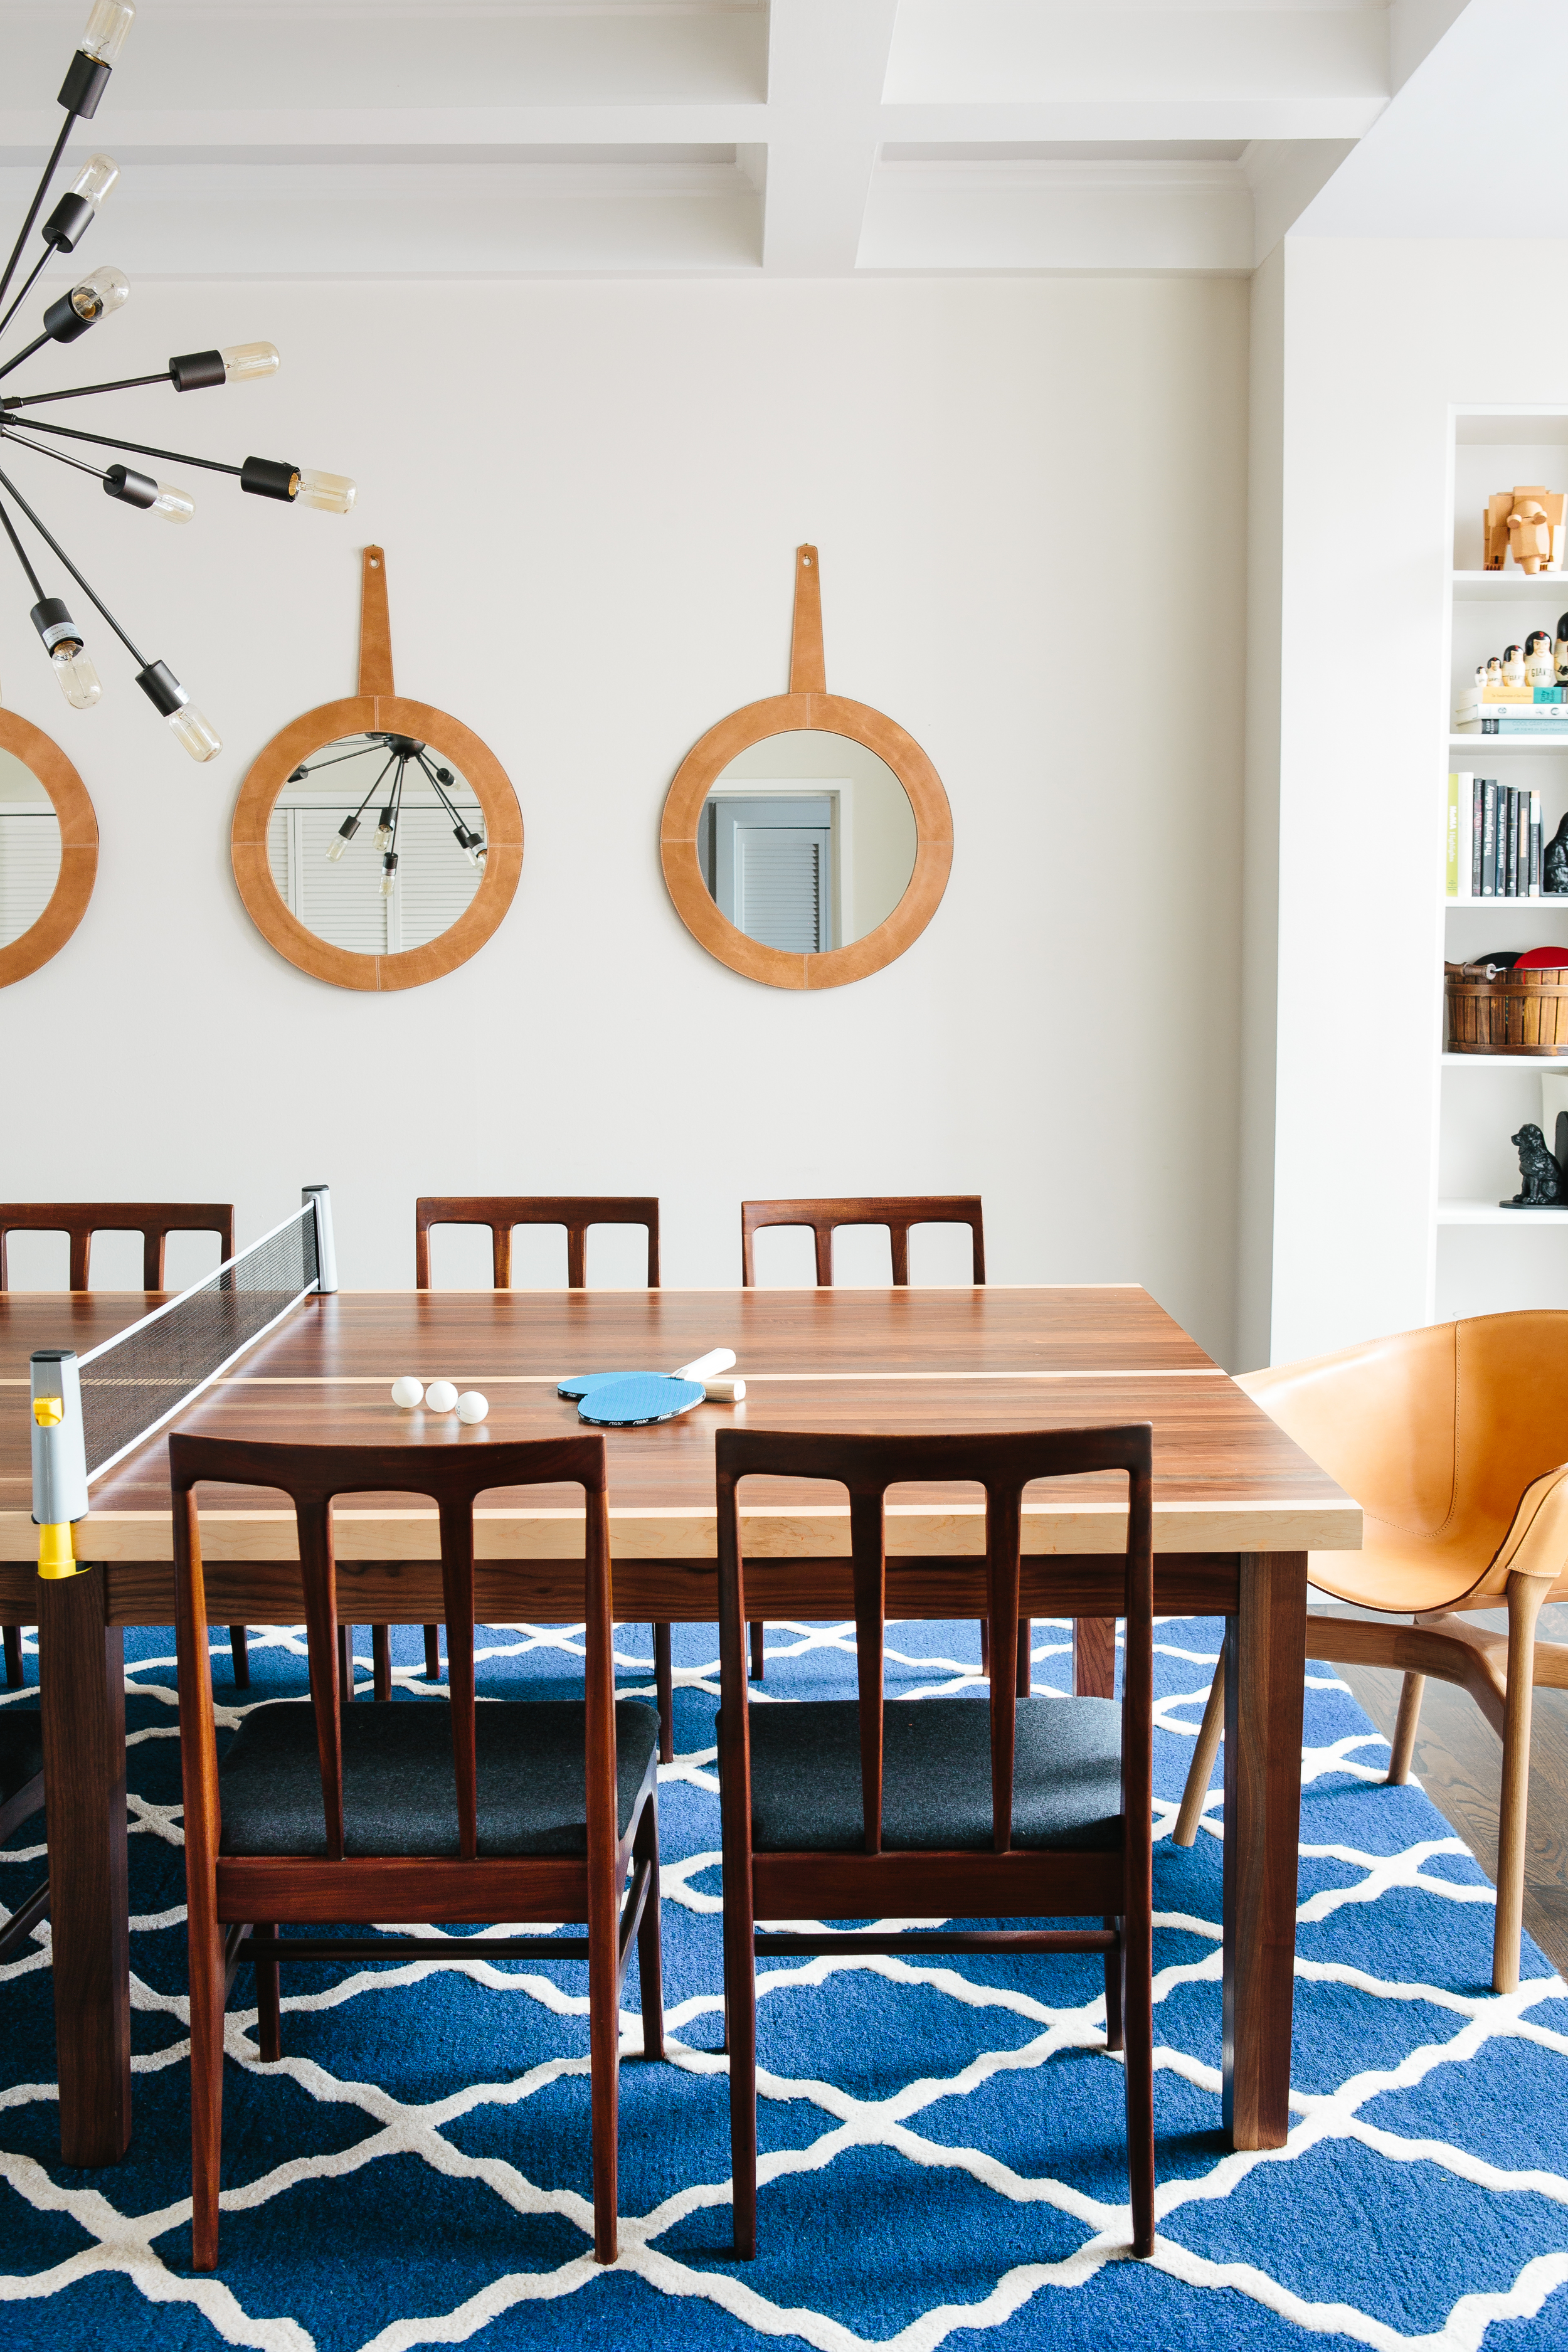 Noz Design - Avenues Family House - Dining Room 3.jpg